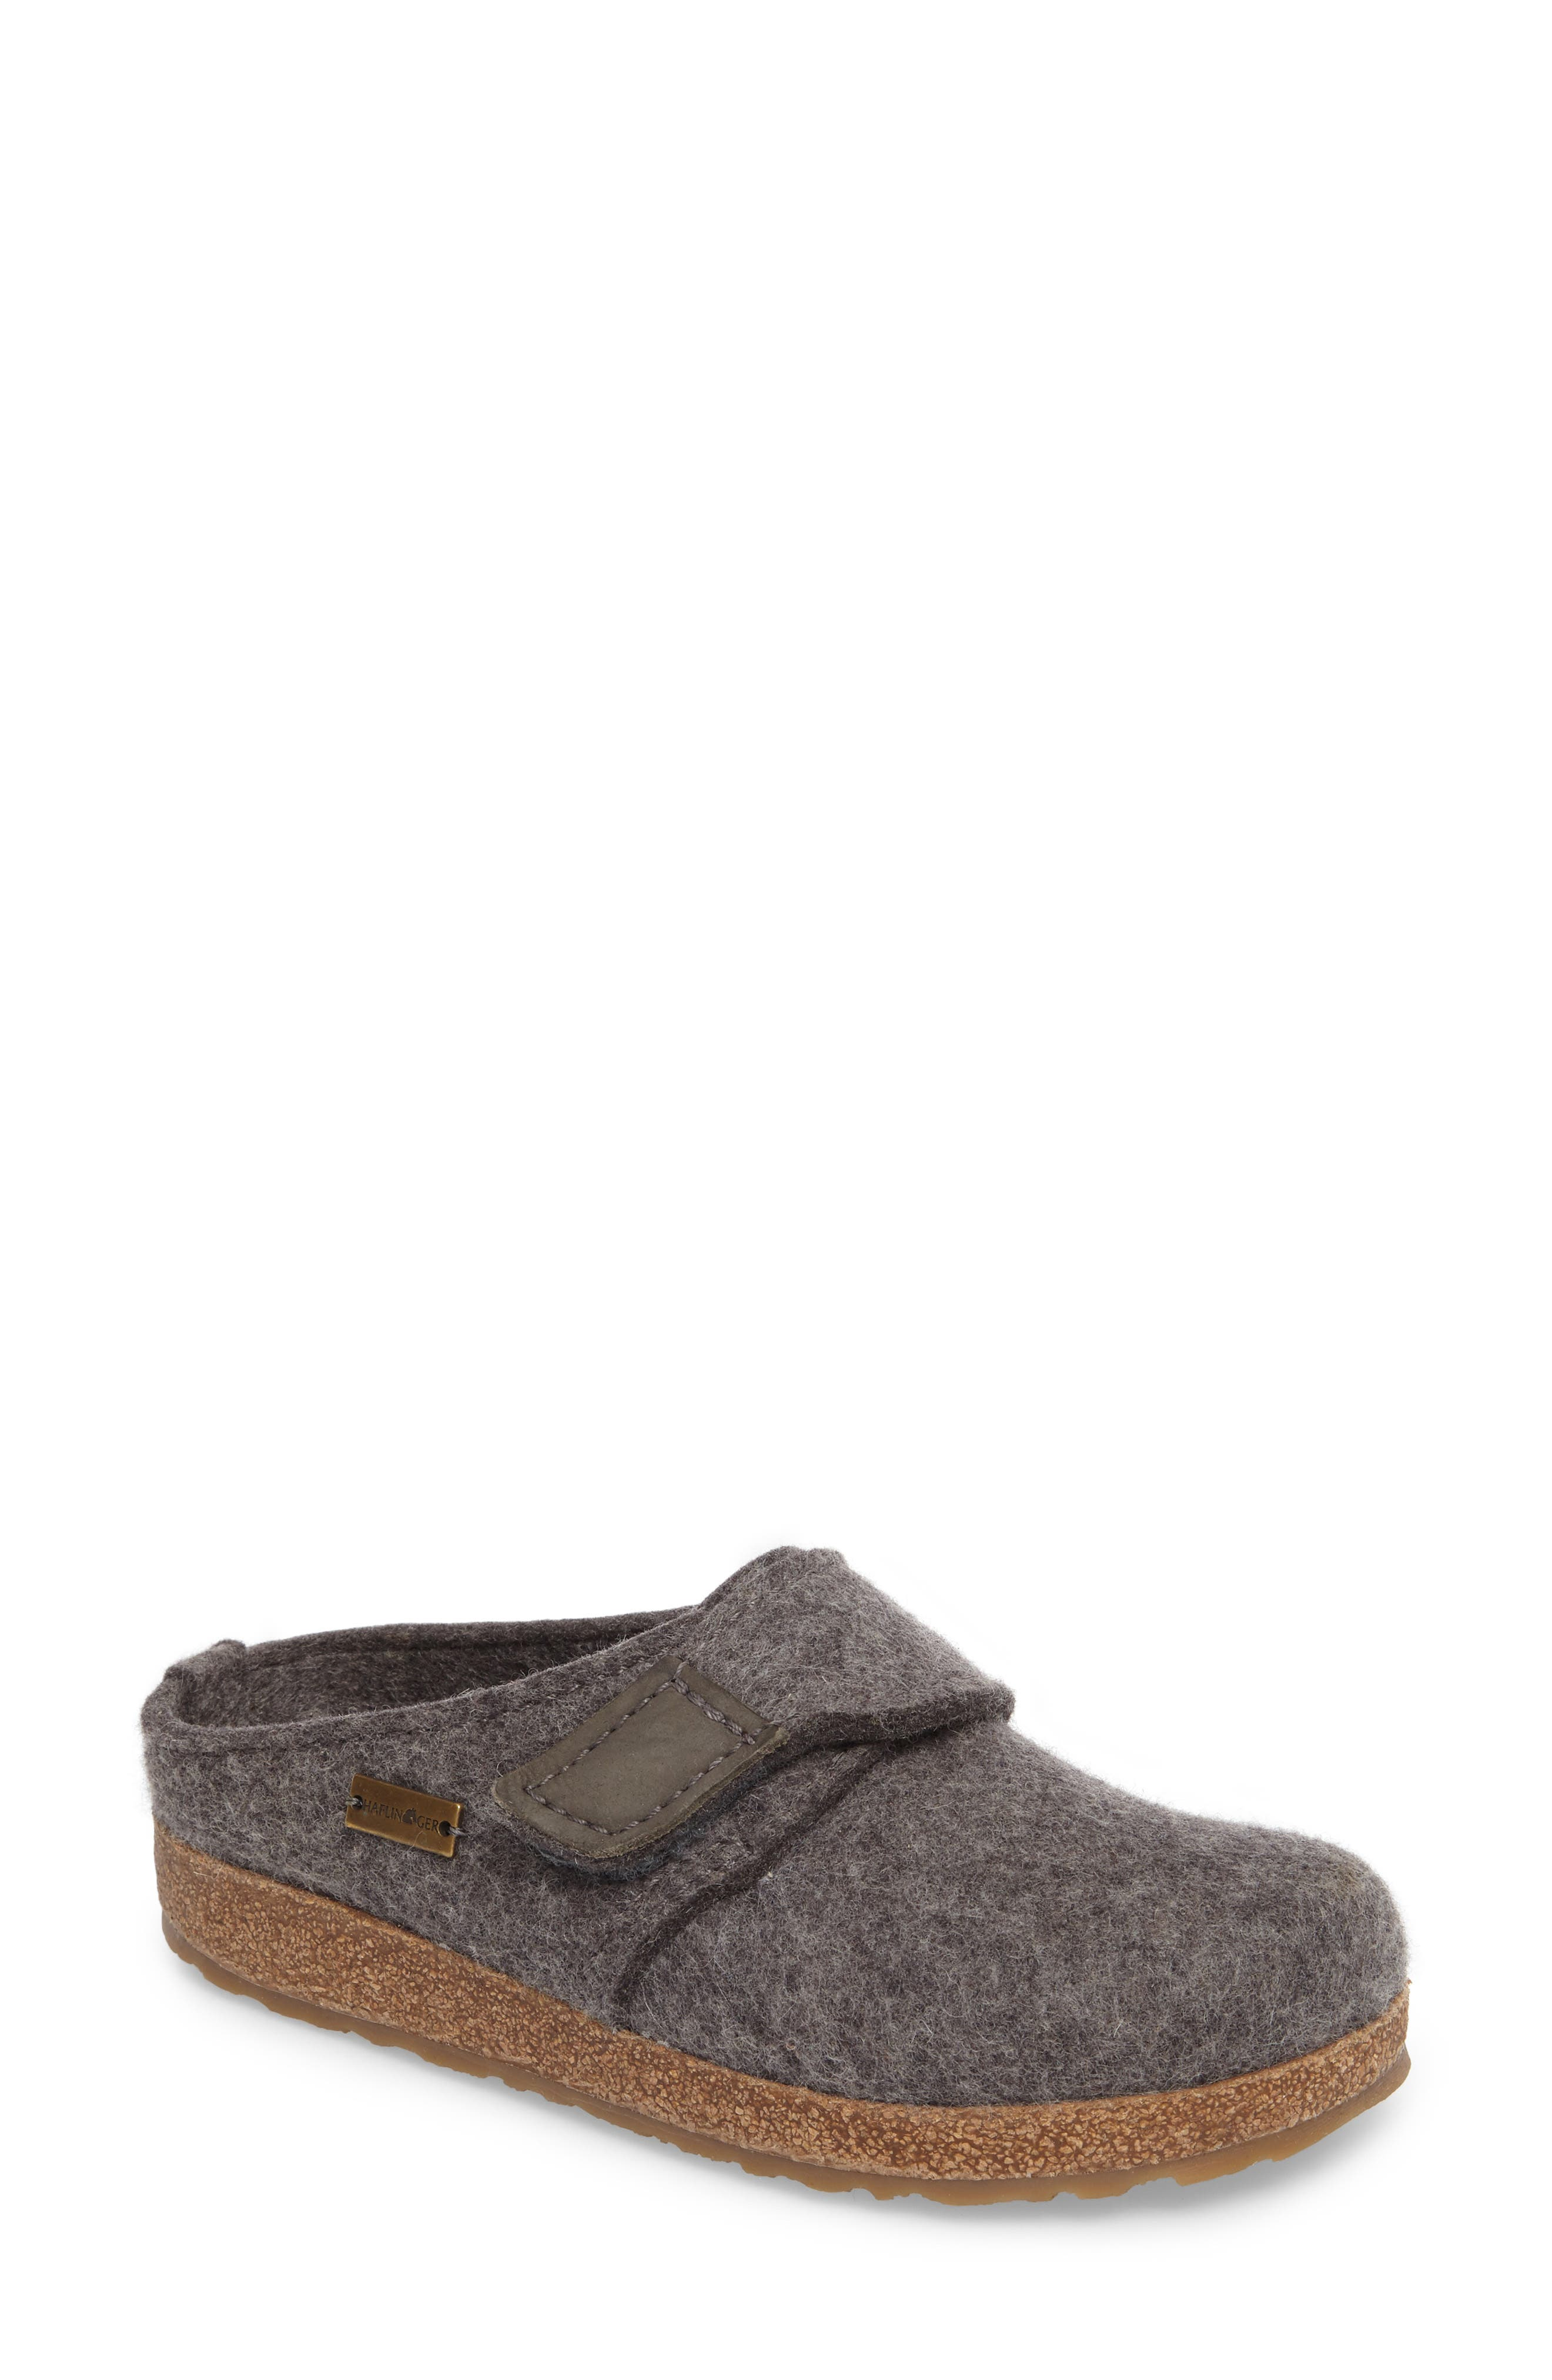 Grizzly Journey Clog Slipper,                         Main,                         color,